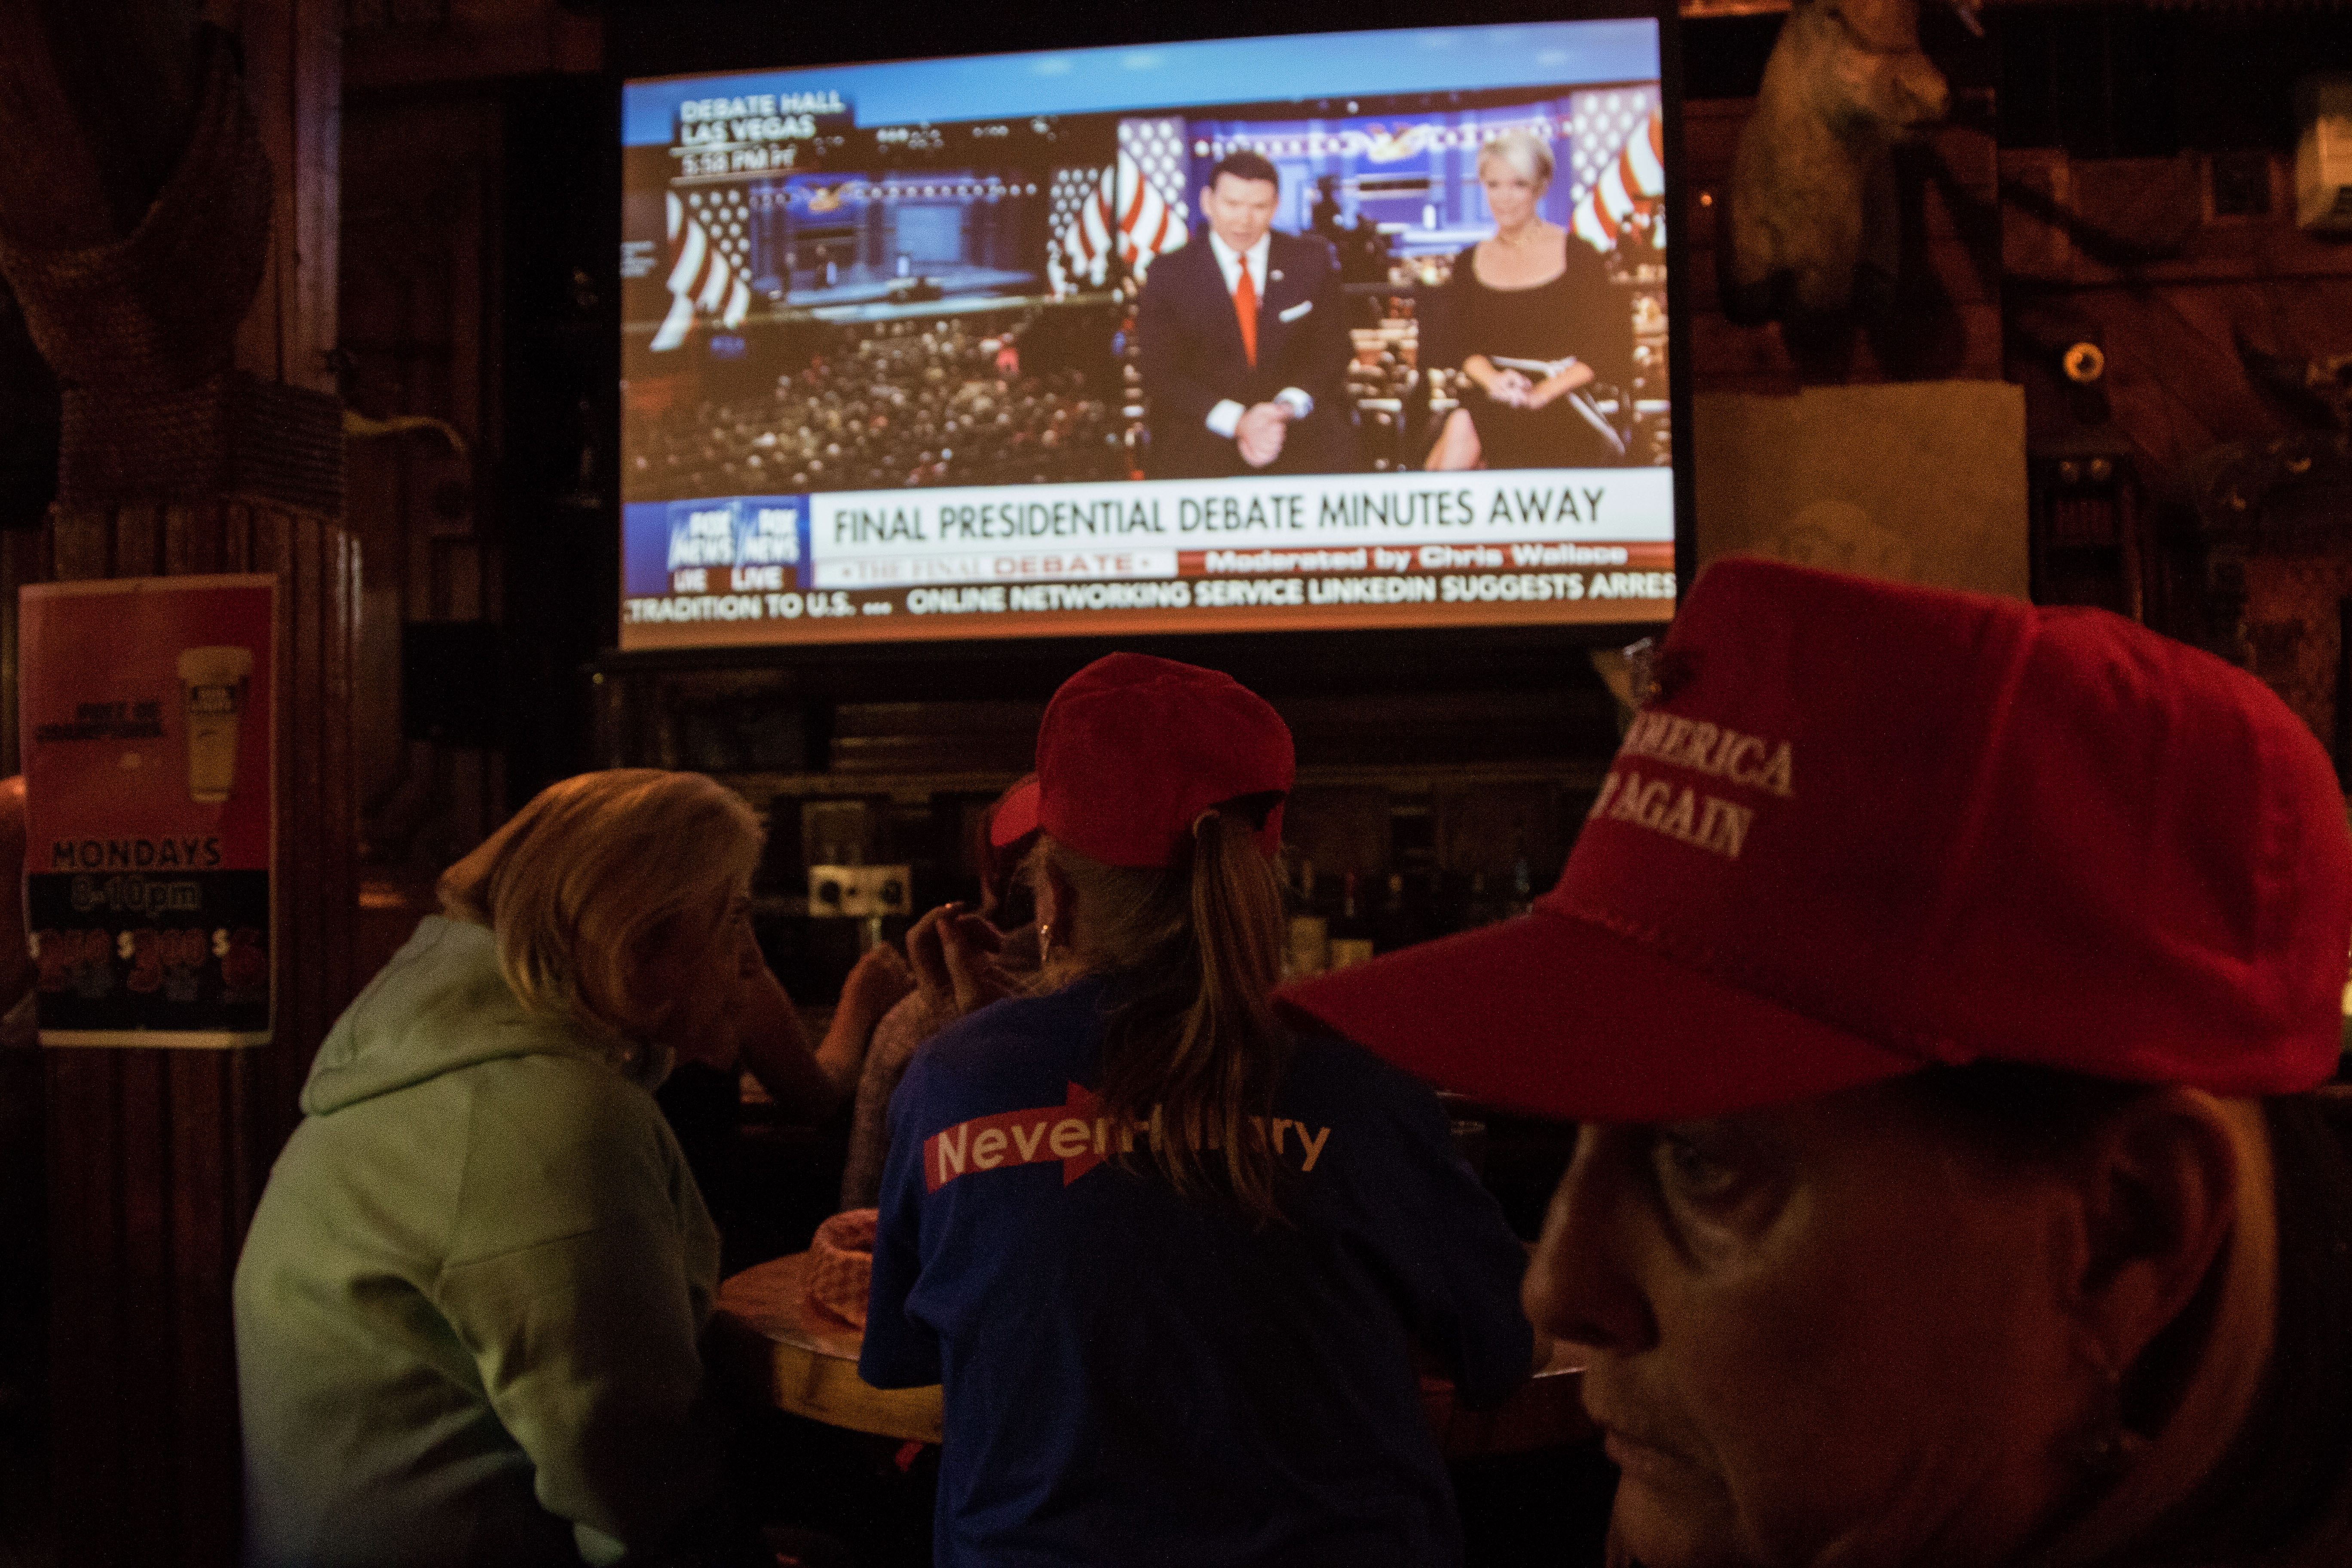 Before the final debate Trump supporters gather together to watch at the Dark Horse. The Dark Horse became their hide out, while many political gatherings happened across Boulder in support of Hillary only a few, hard core supporters met in public at this classic American bar and grill.(Jackson Barnett/CU Independent)